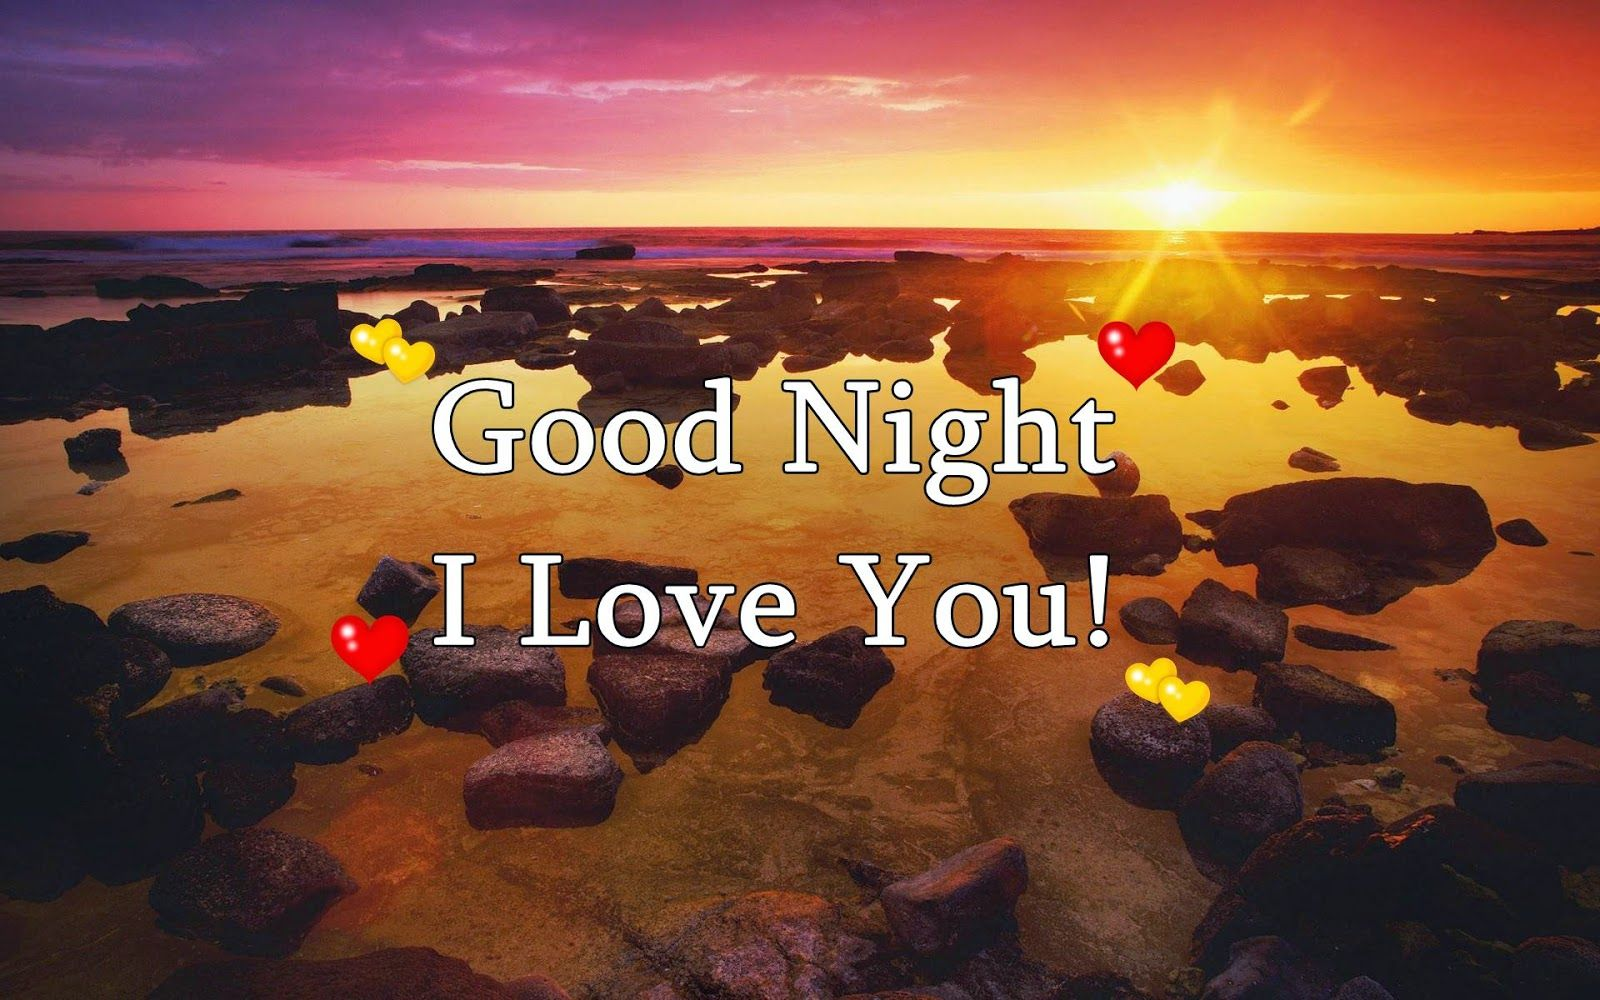 Romantic Good Night Sweet Dreams For Lovers Hd Images Download Free I Love You Wallpapers Good Night I Love You Good Night Love Quotes Good Night Love Images